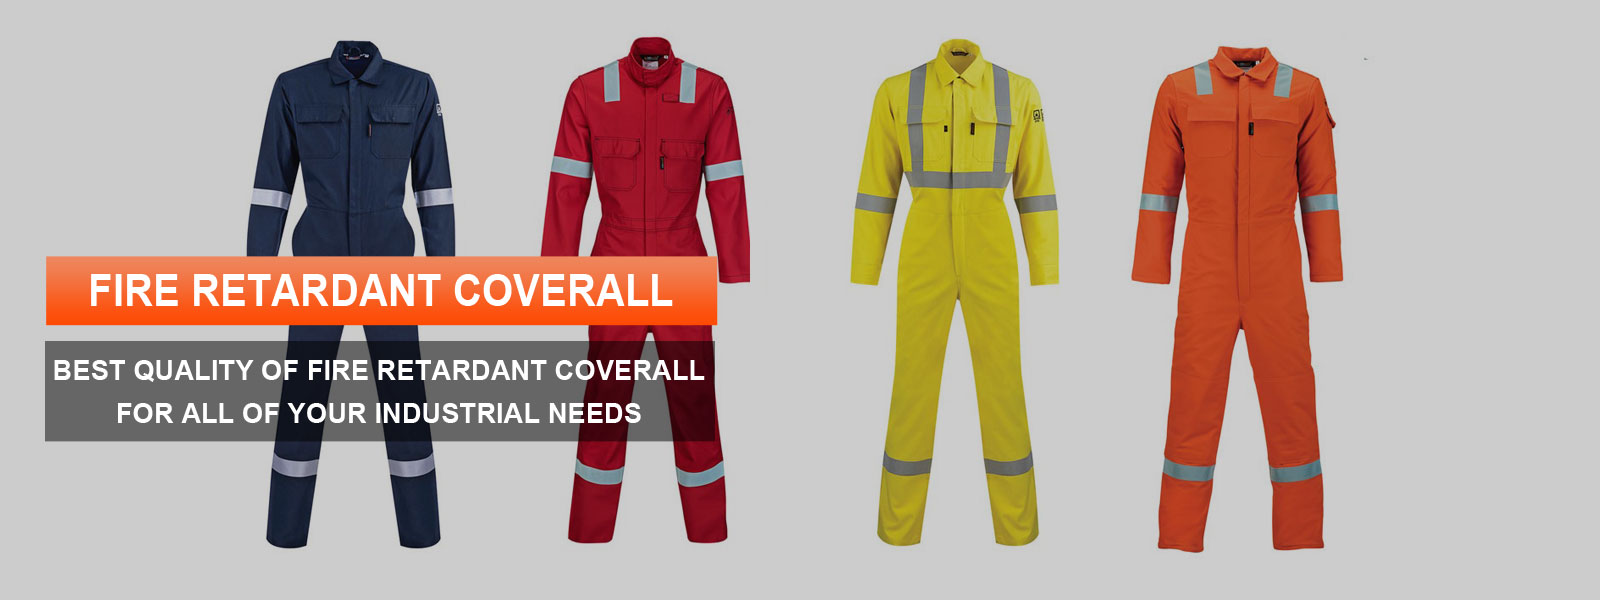 Fire Retardant Coverall Manufacturers in Pimpri Chinchwad